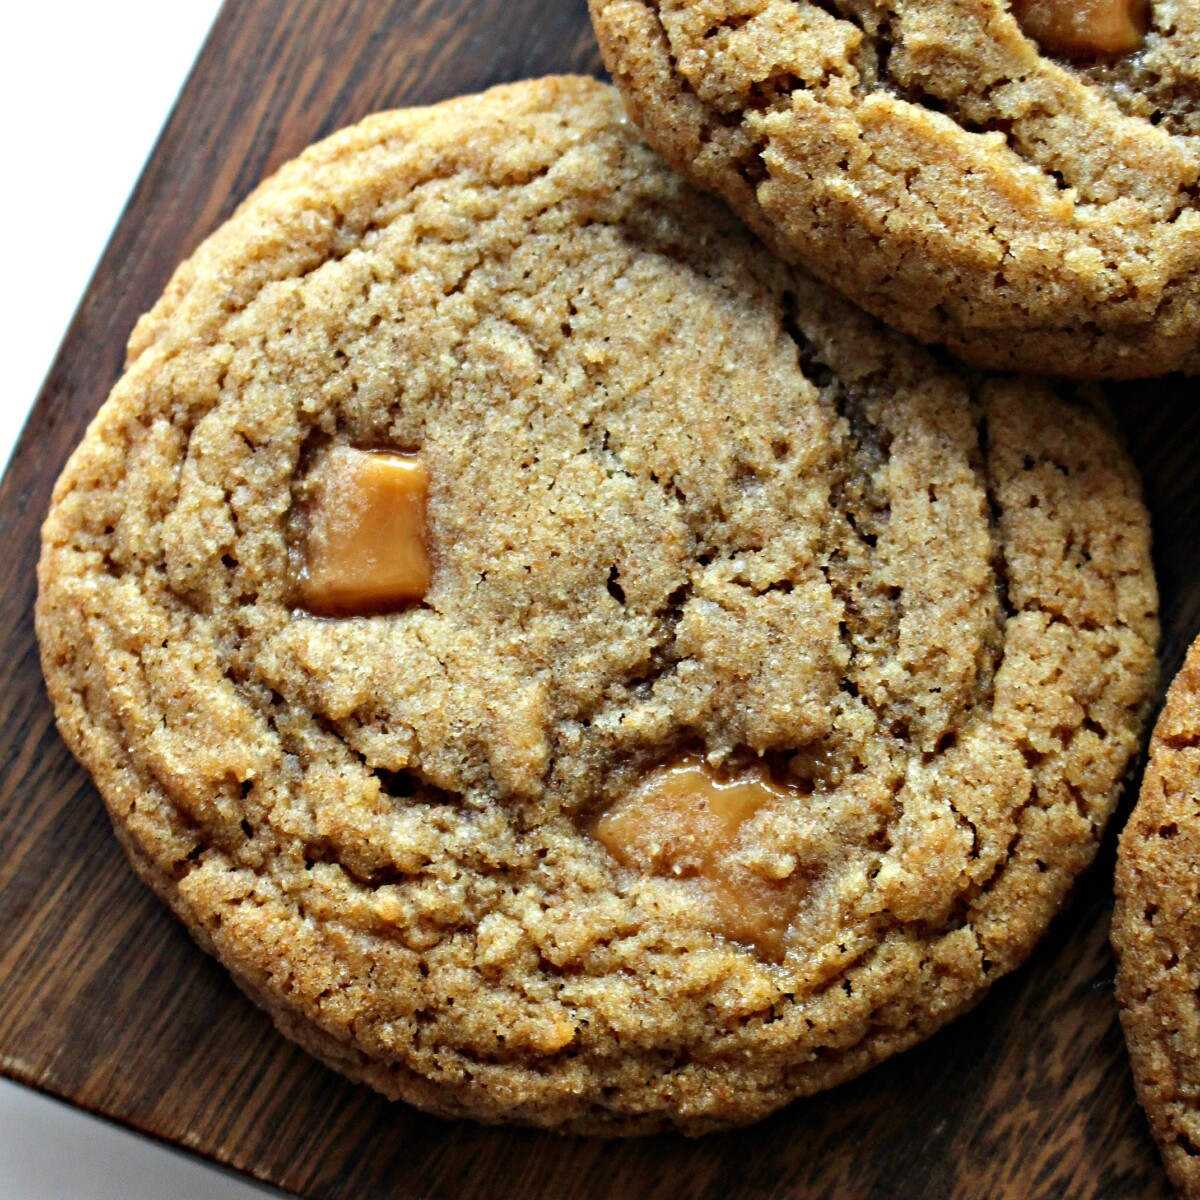 Closeup of cookie showing chunks of caramel and golden brown, crinkled top.